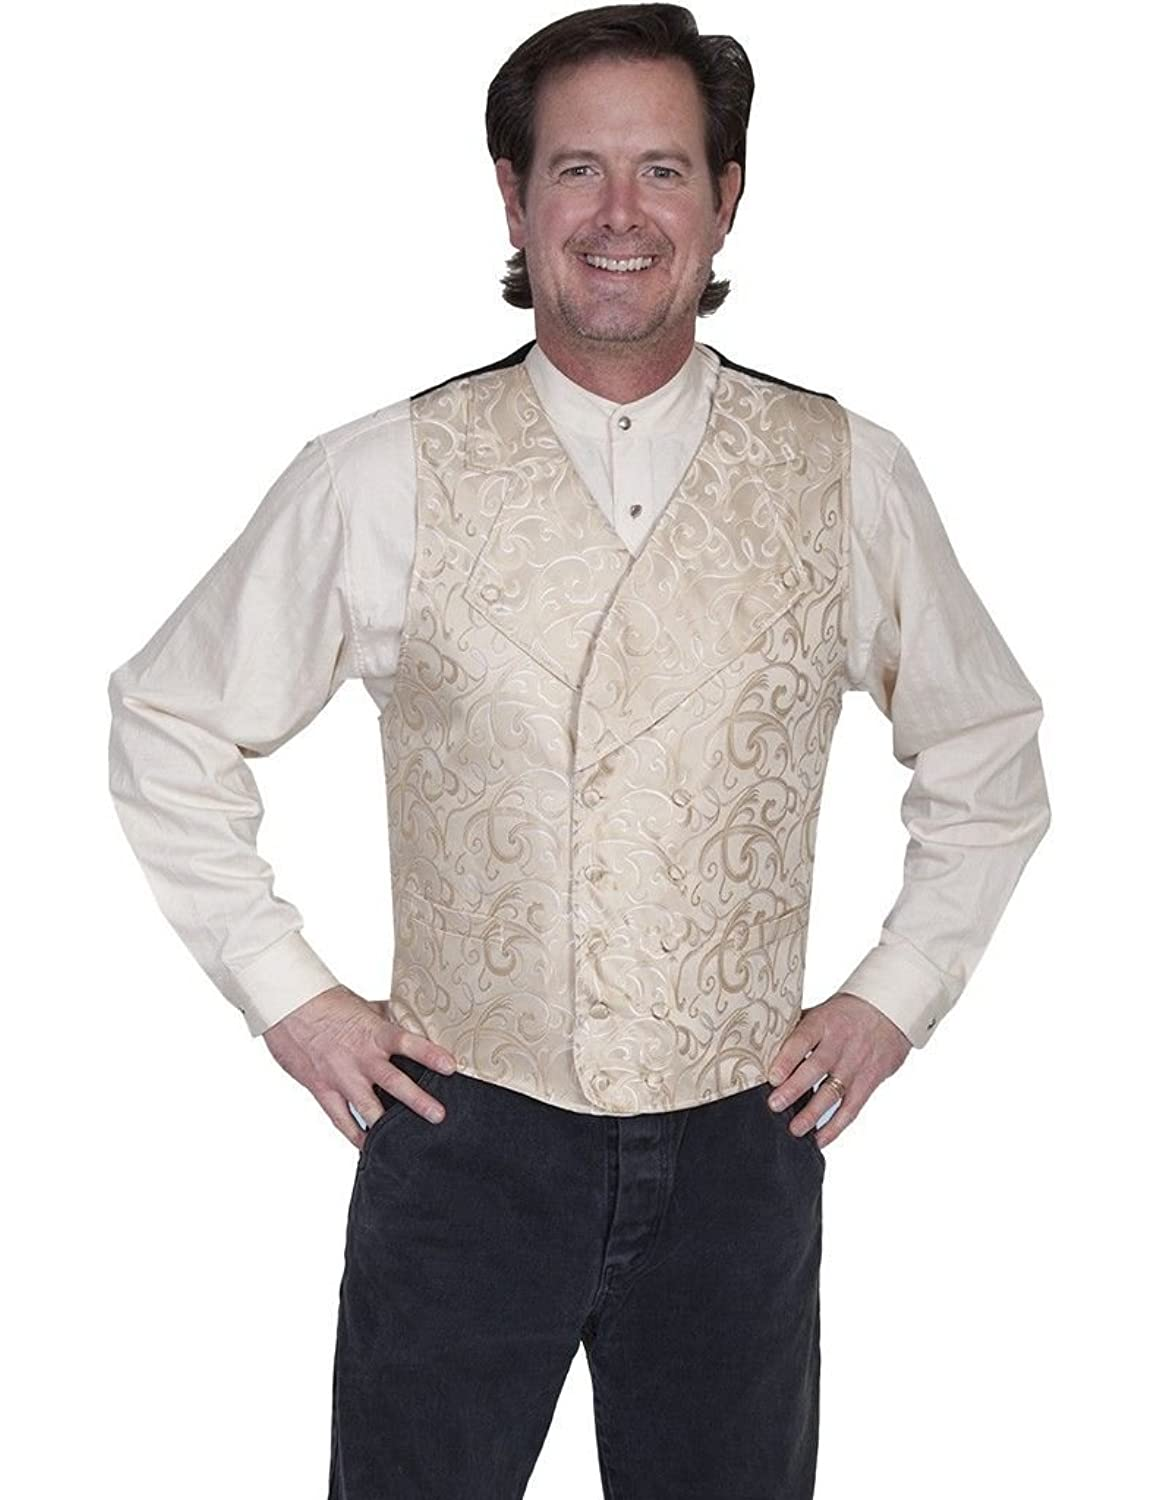 Men's Vintage Inspired Vests Rangewear By Scully Mens Rangewear Vine Scroll Vest - Rw252-Red $50.81 AT vintagedancer.com